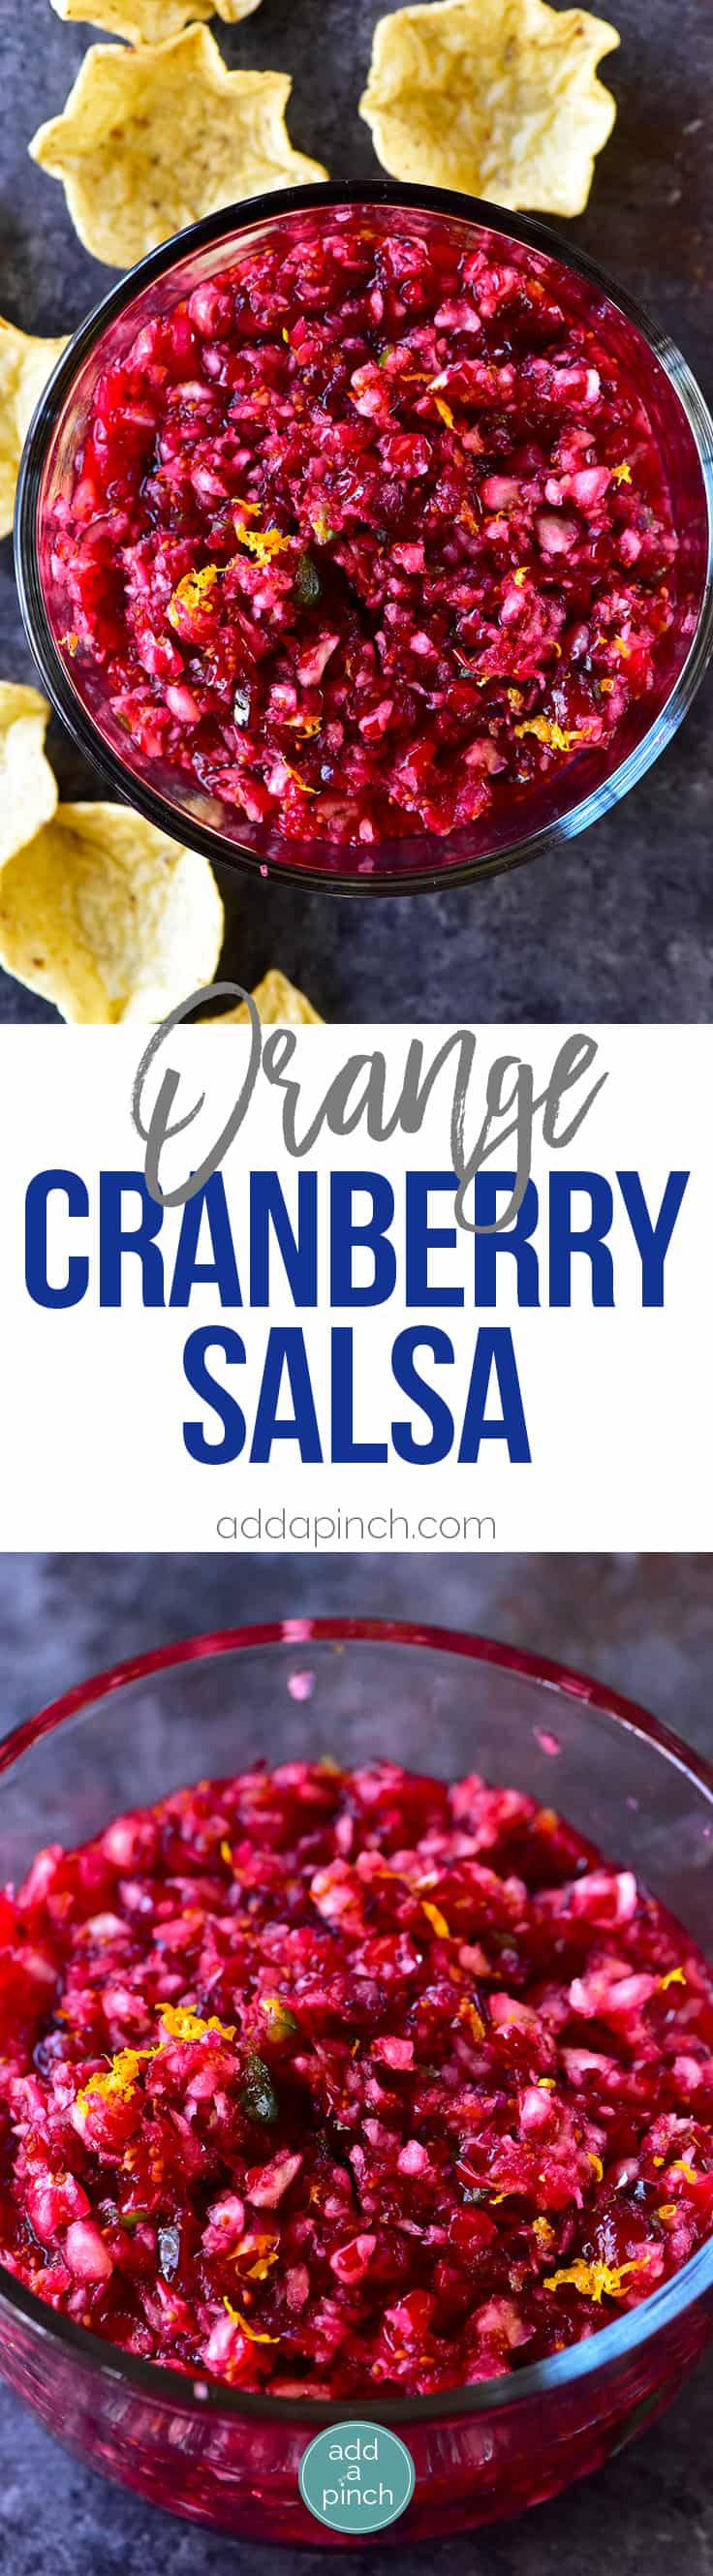 Orange Cranberry Salsa Recipe - Fresh cranberry salsa is a sweet fruit salsa recipe that adds color, flavor and wow to any dish! Perfect throughout the holidays! // addapinch.com